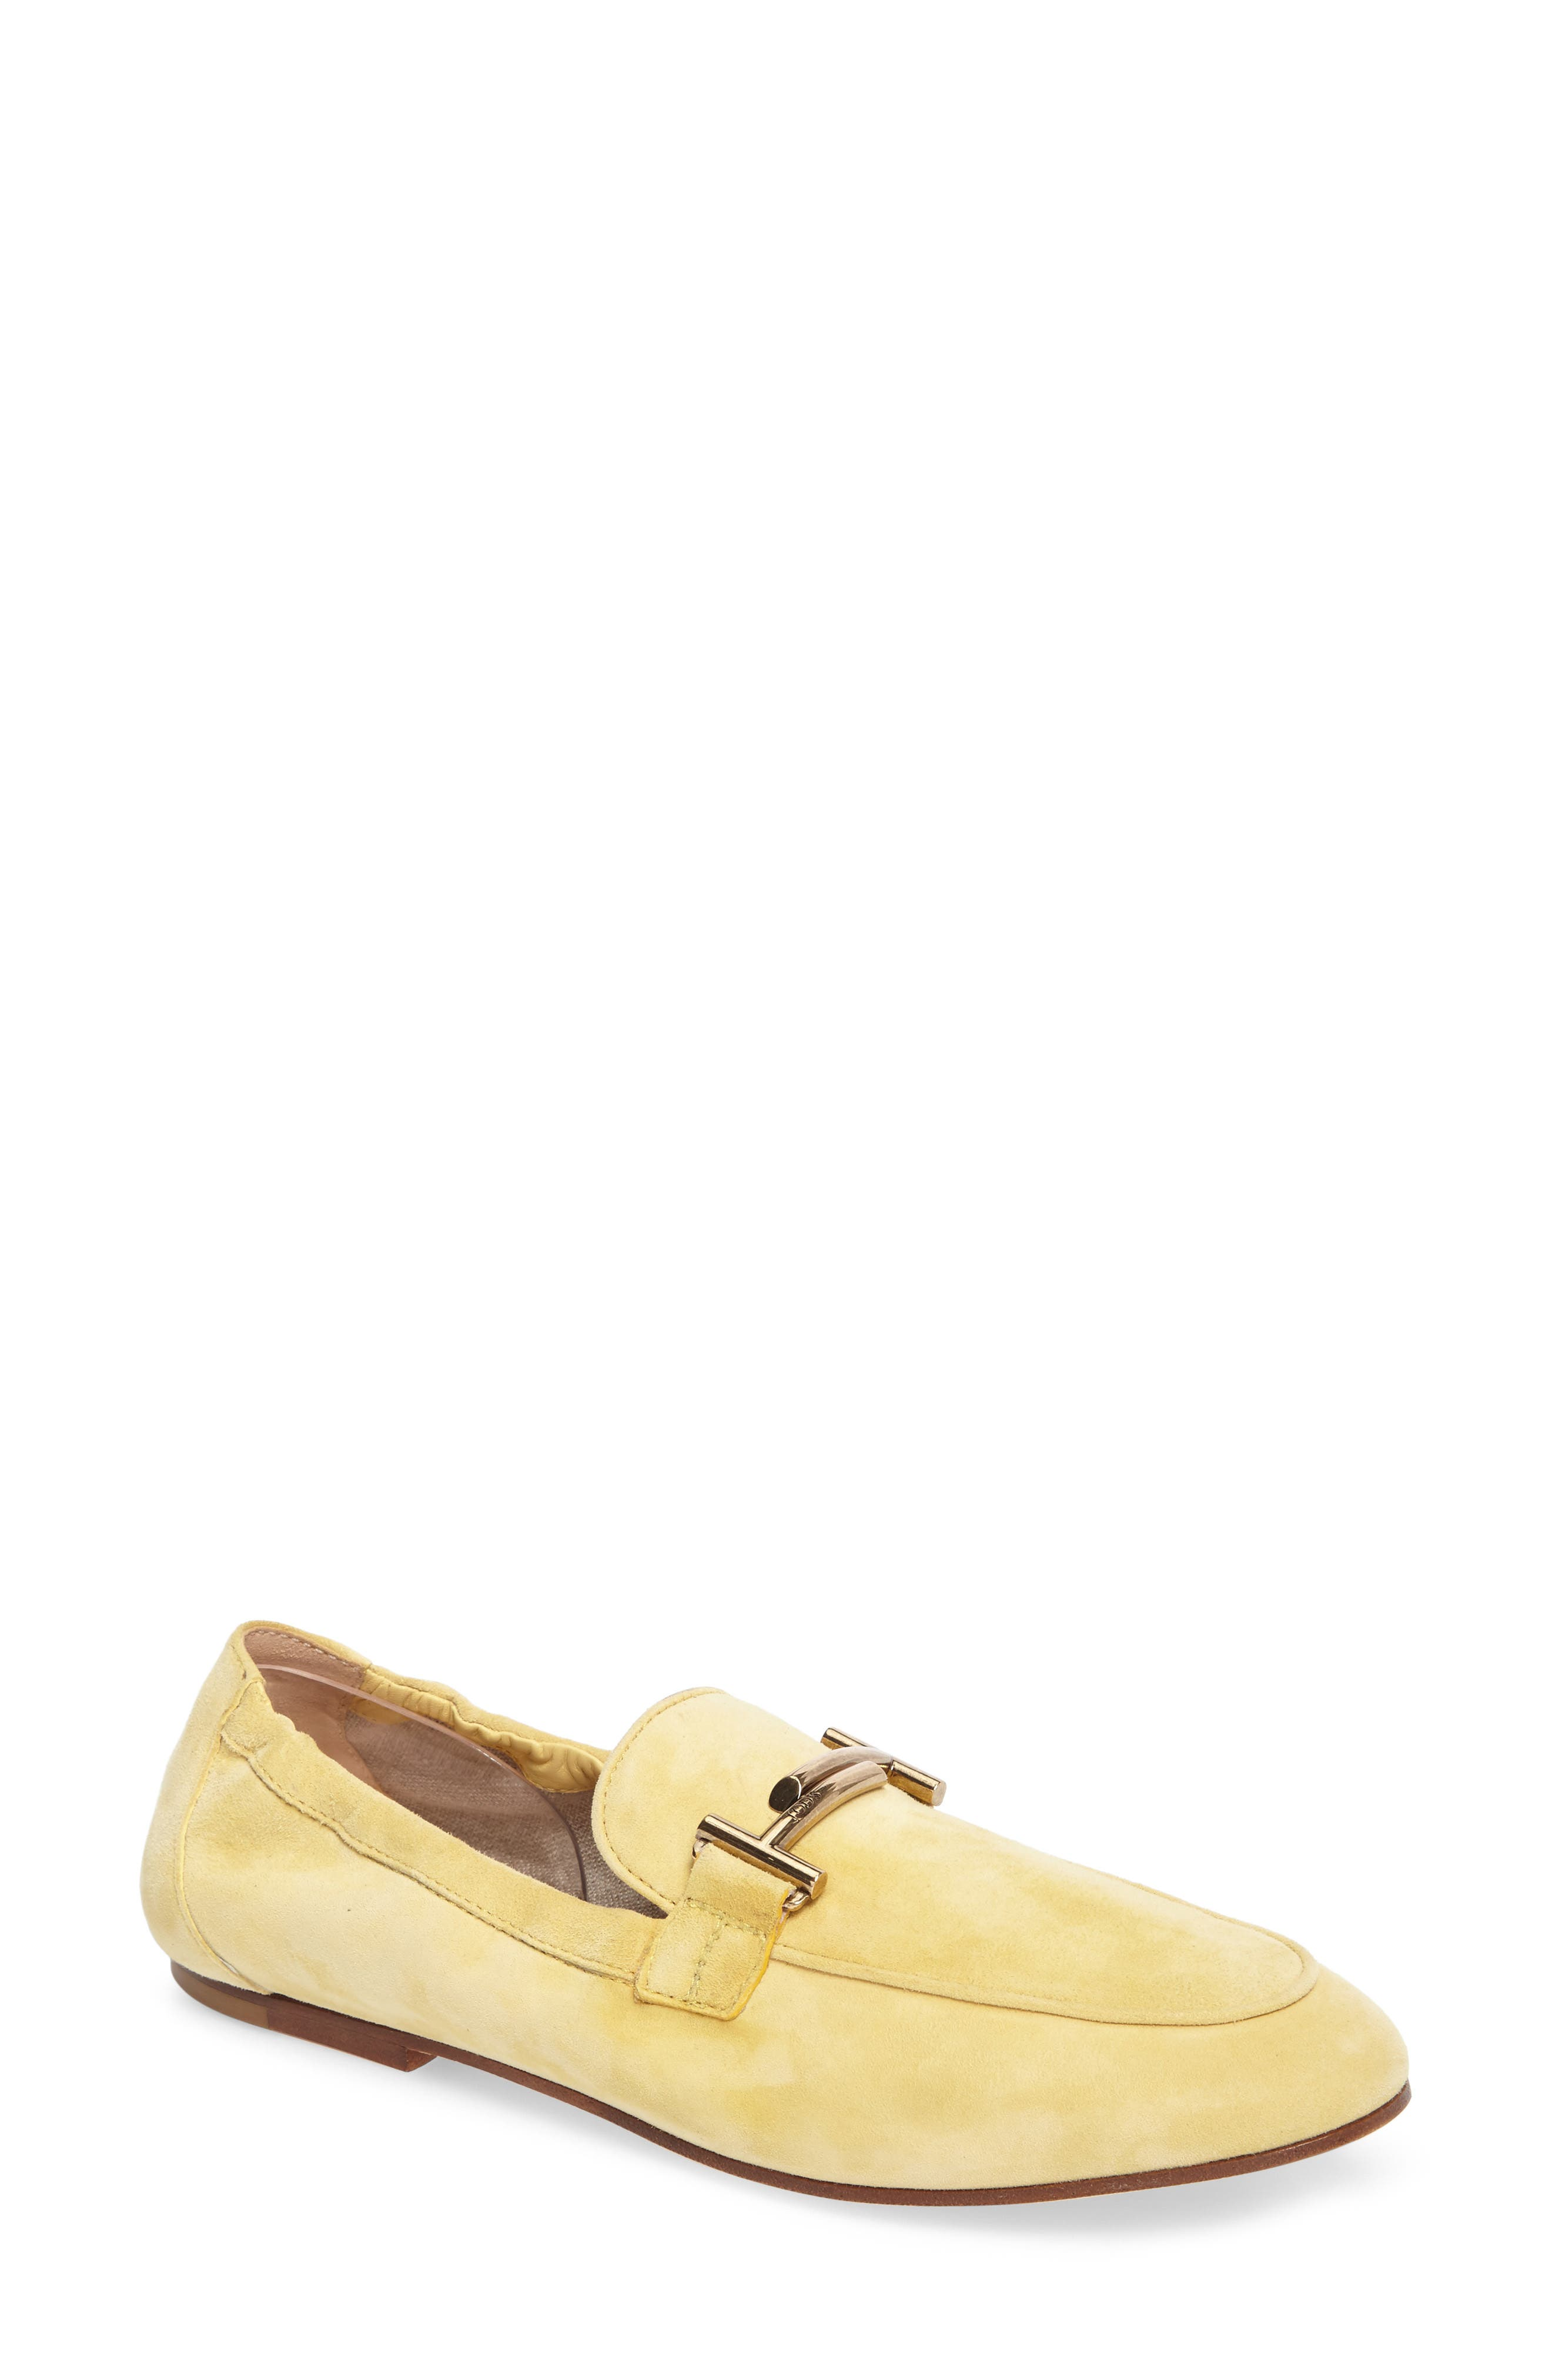 Double T Scrunch Loafer,                             Main thumbnail 4, color,